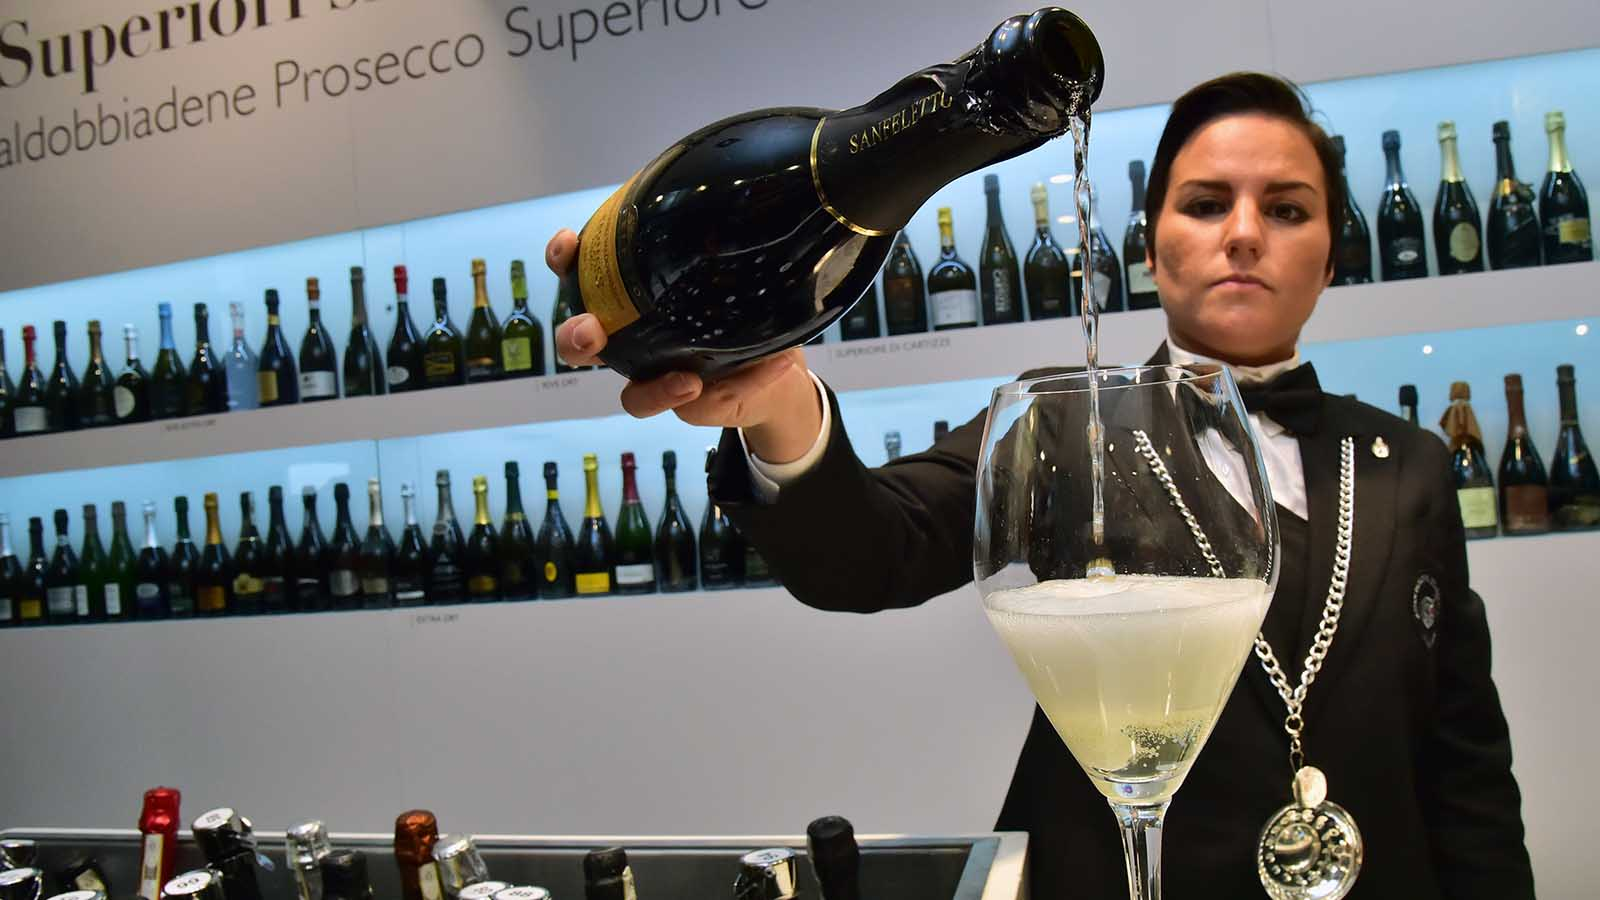 How to Buy a Good Bottle of Prosecco